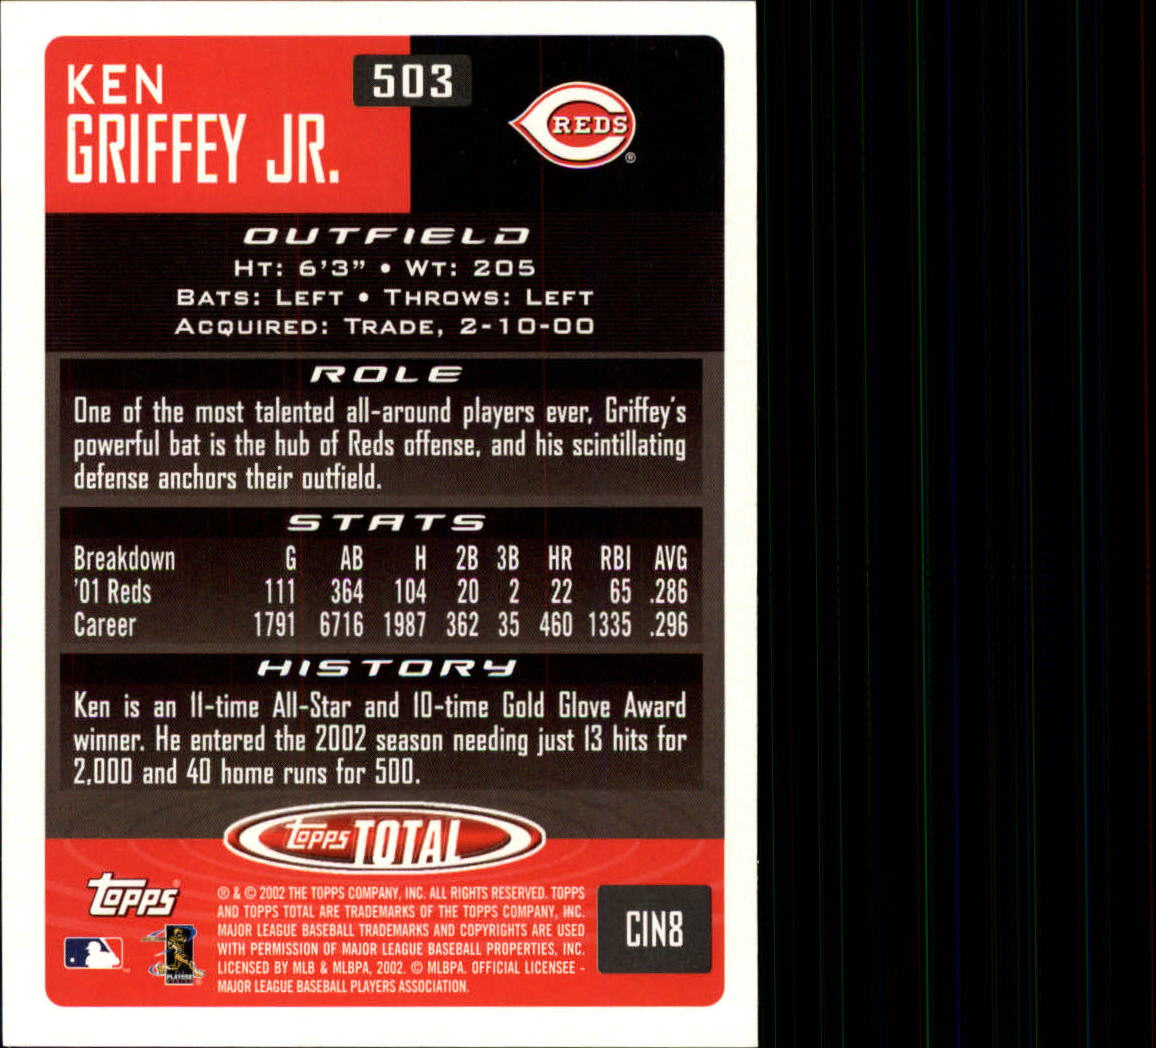 2002 Topps Total #503 Ken Griffey Jr. back image